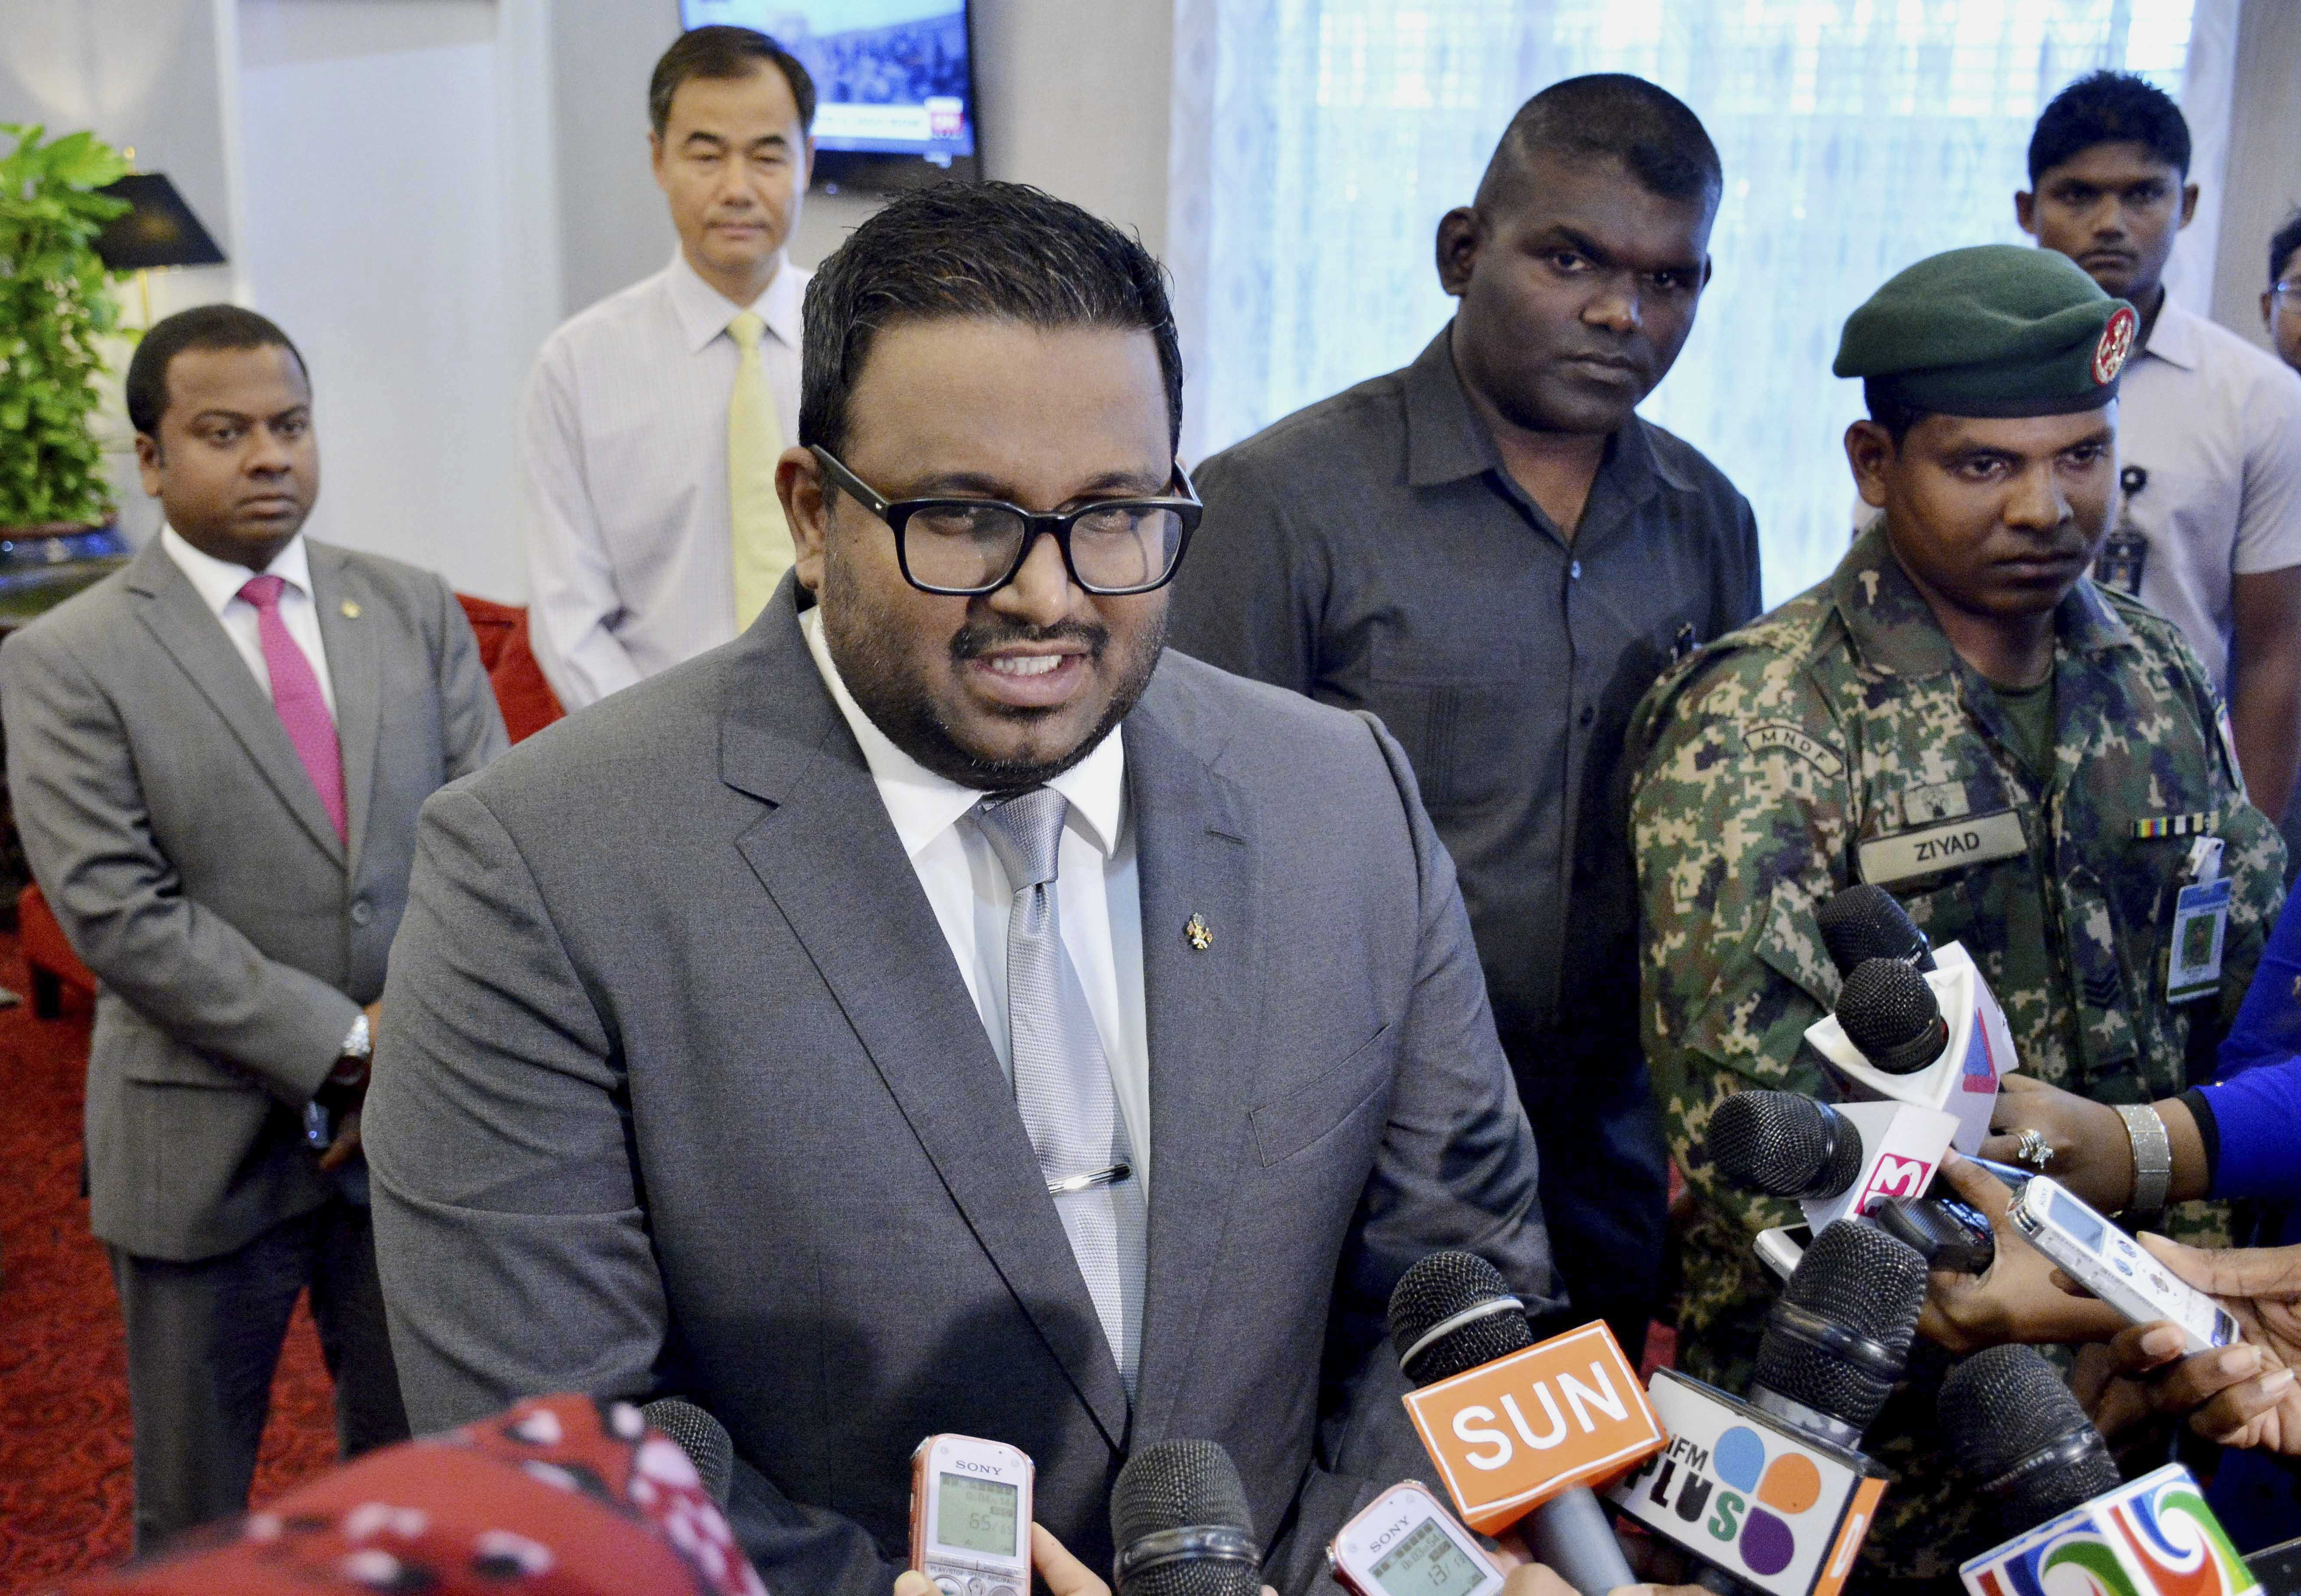 Maldives Vice President Ahmed Adeeb speaks to media earlier this month at the Ibrahim Nasir International Airport, near Male, Maldives. (Photo by Ali Naseer/AP)